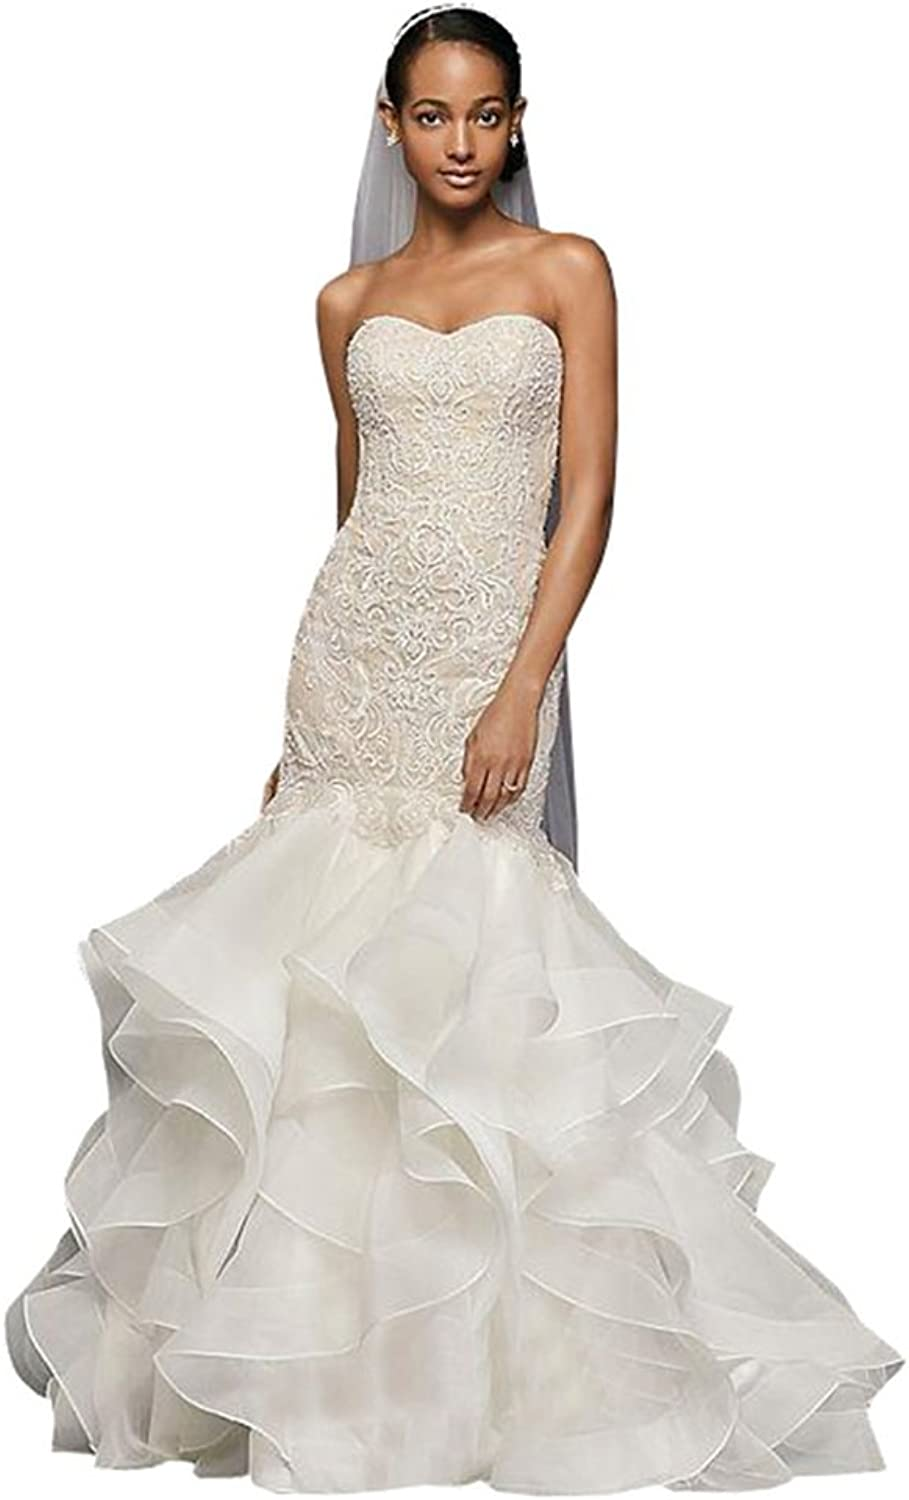 Ellystar Women's Mermaid Lace Sleeveless Covered Button Sweetheart Bridal Gowns